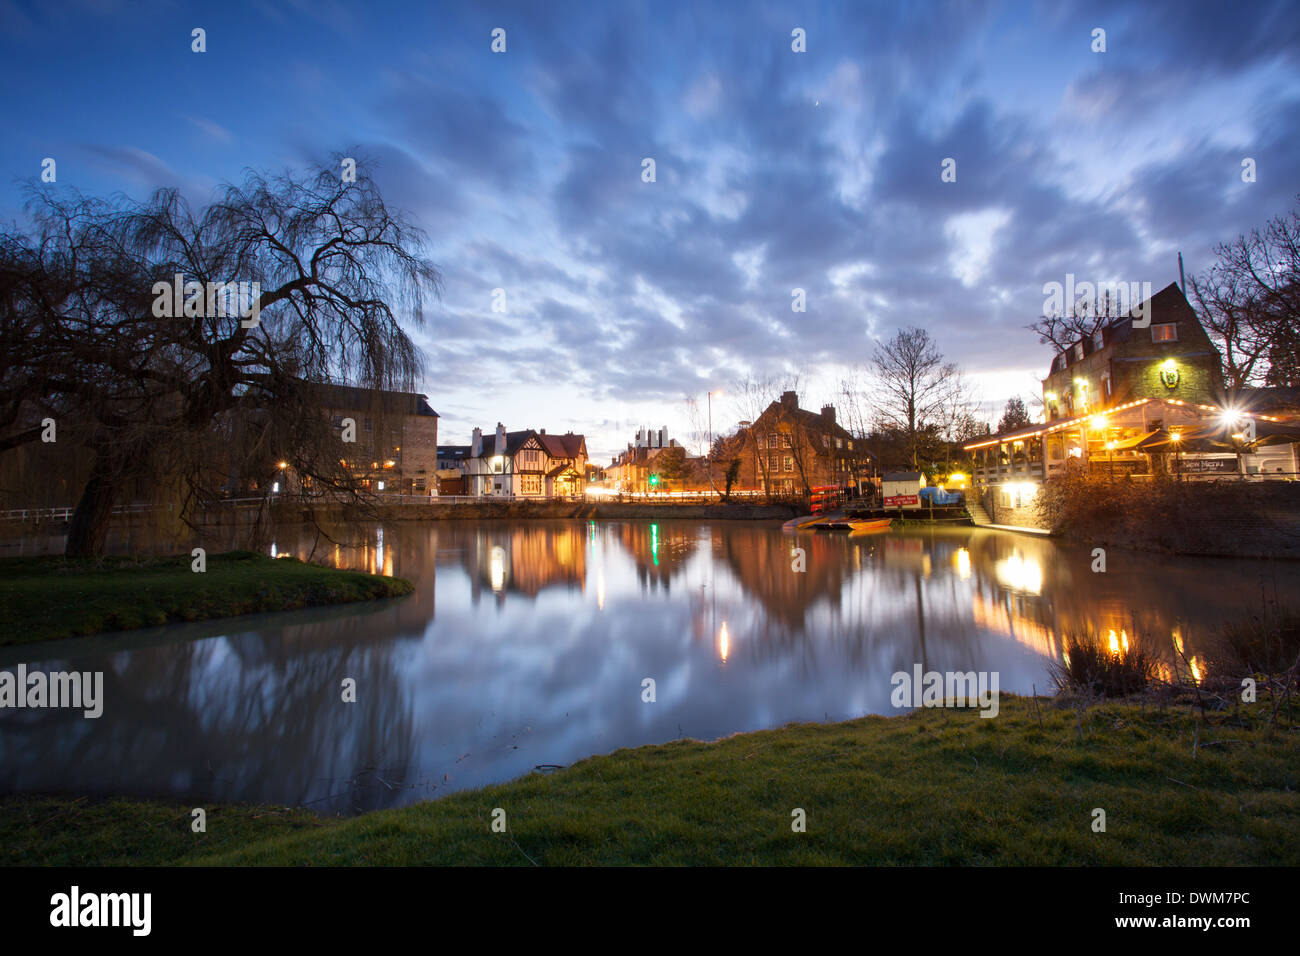 Night time reflections in the Mill Pond river Cam Cambridge, UK - Stock Image